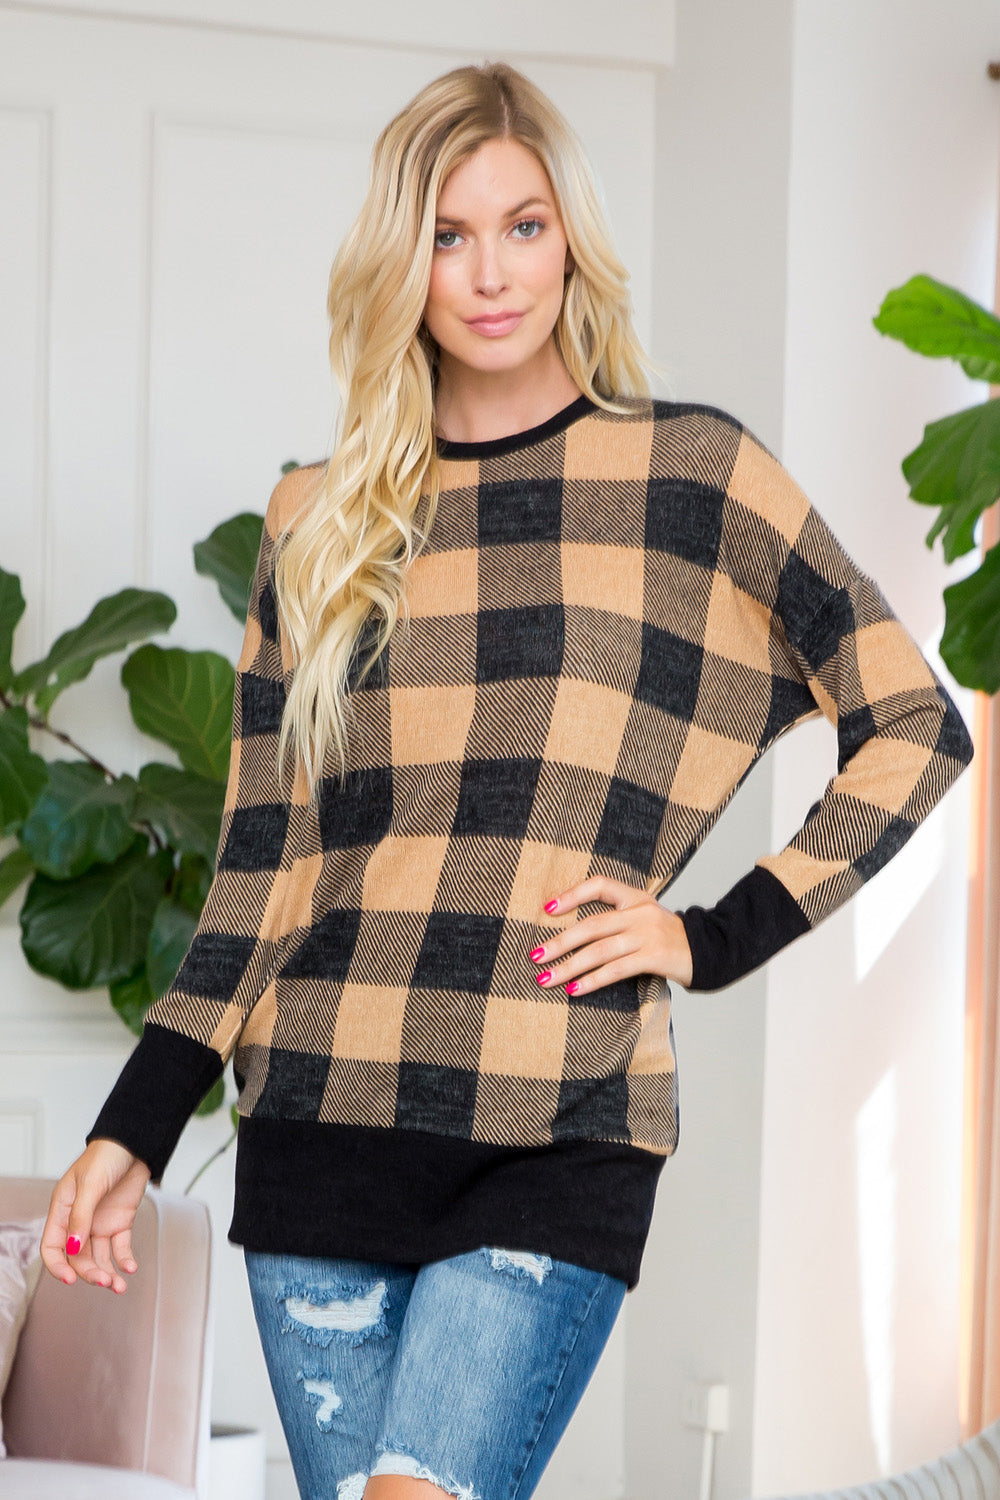 Plaid Print Tunic Top - Mocha/Black